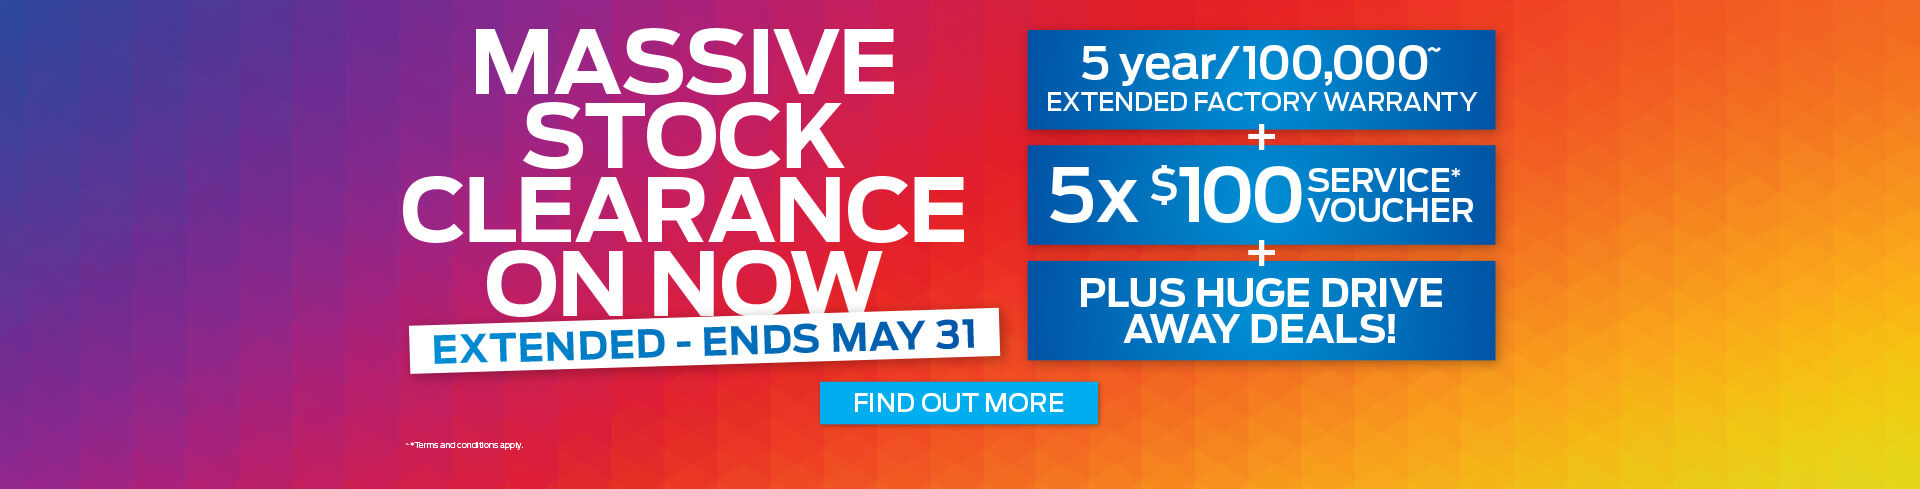 Massive Stock Clearance Event